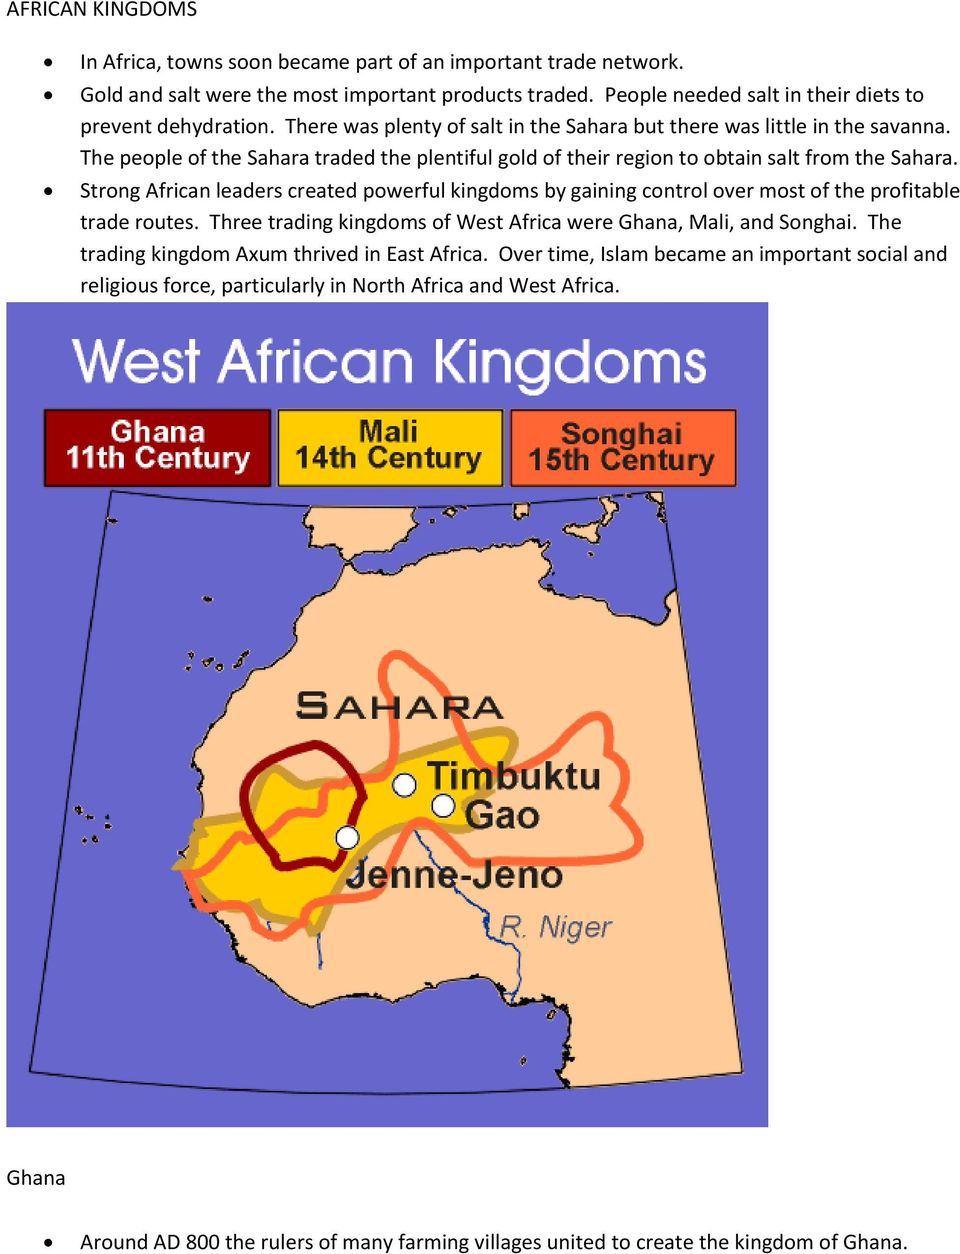 Strong African leaders created powerful kingdoms by gaining control over most of the profitable trade routes. Three trading kingdoms of West Africa were Ghana, Mali, and Songhai.